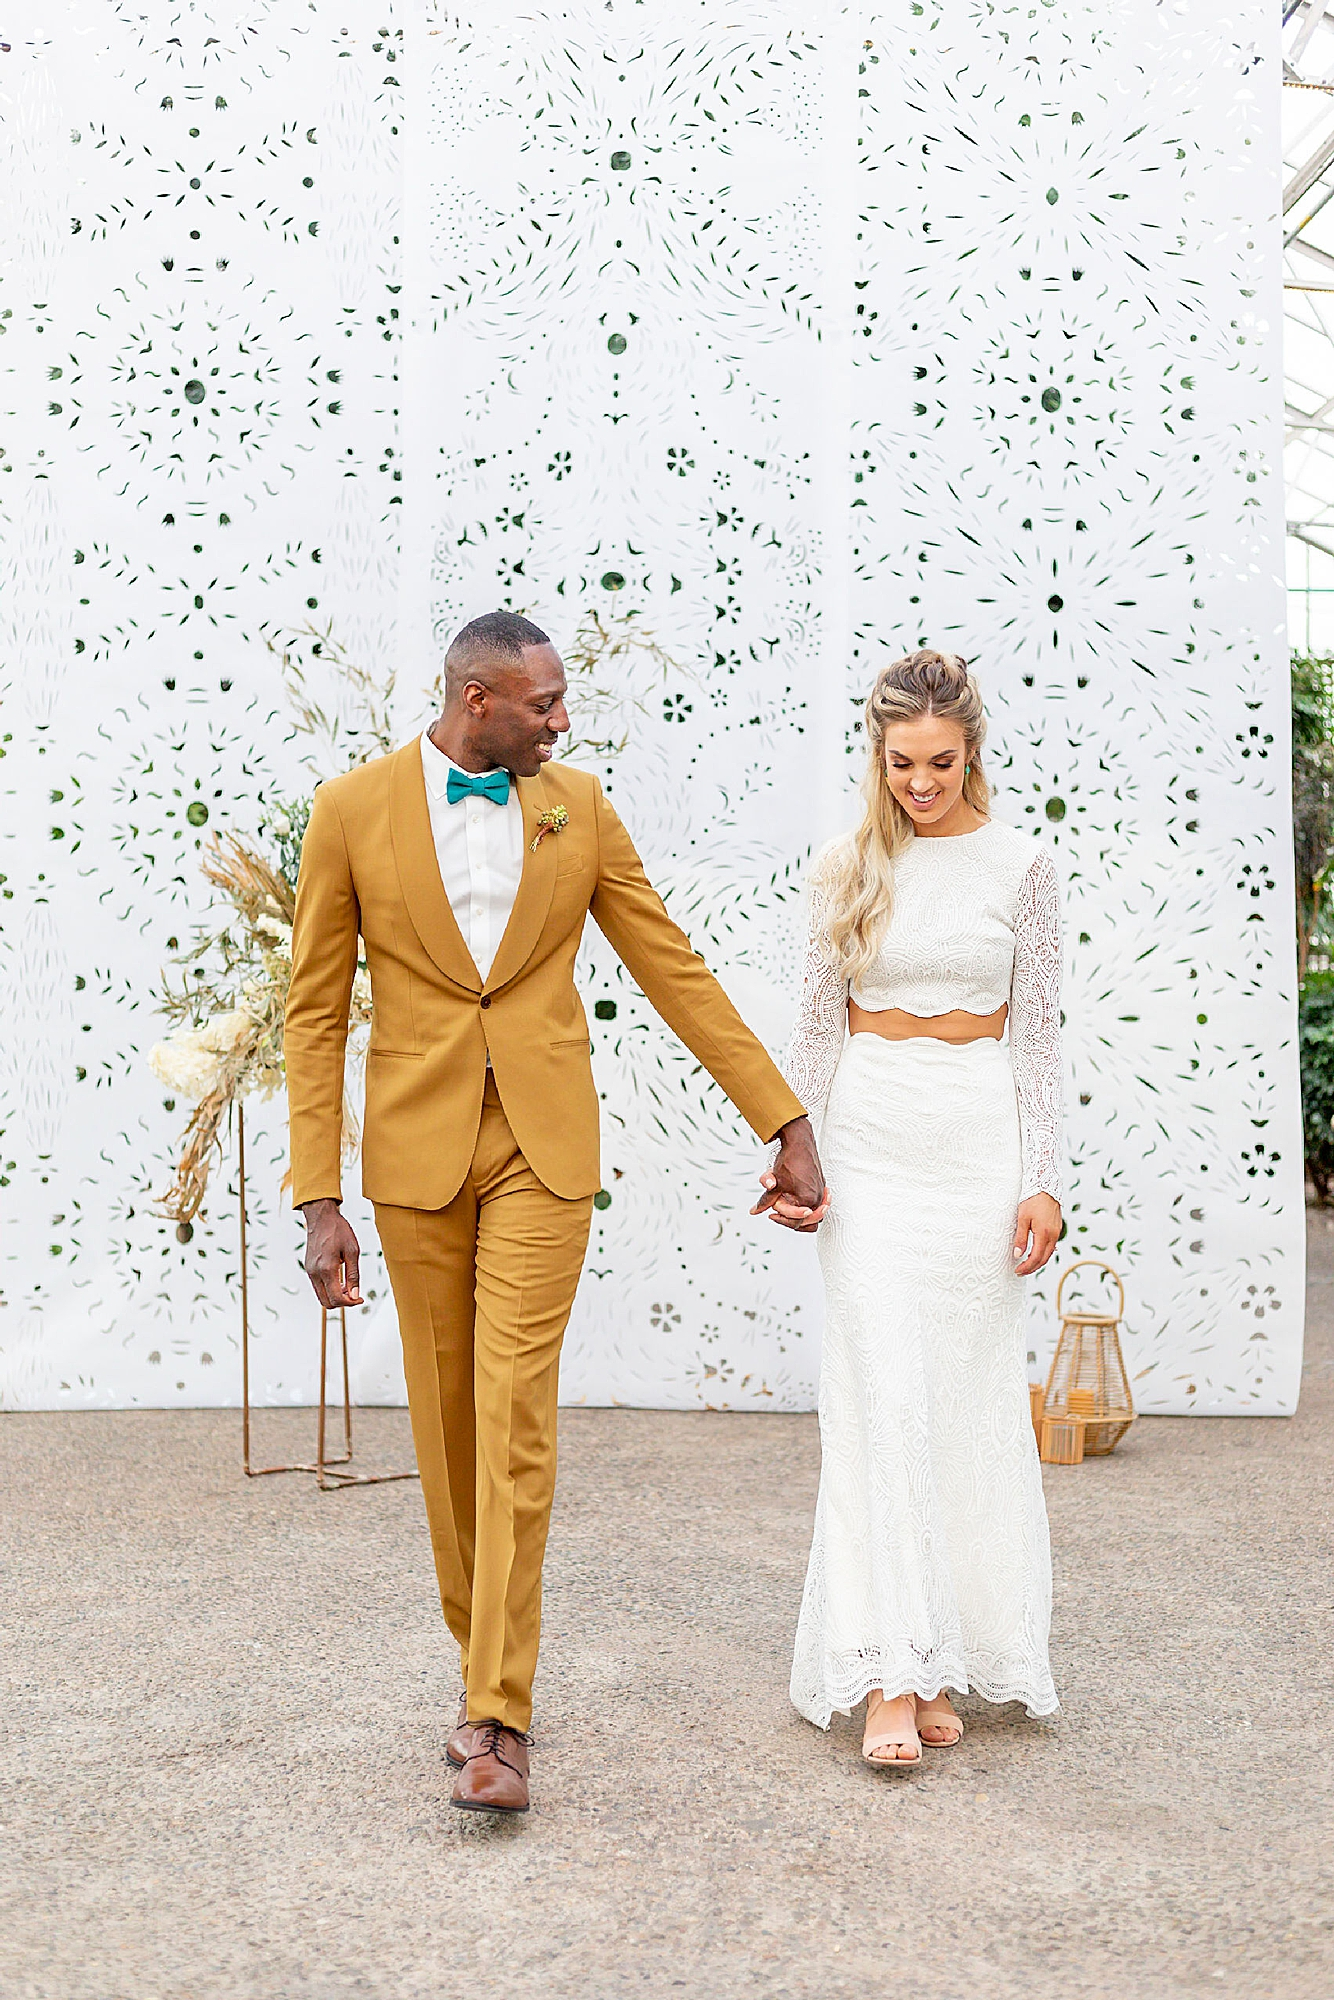 Colorful and Vibrant Wedding Photography at Fairmount Horticultural Center by Magdalena Studios 0029